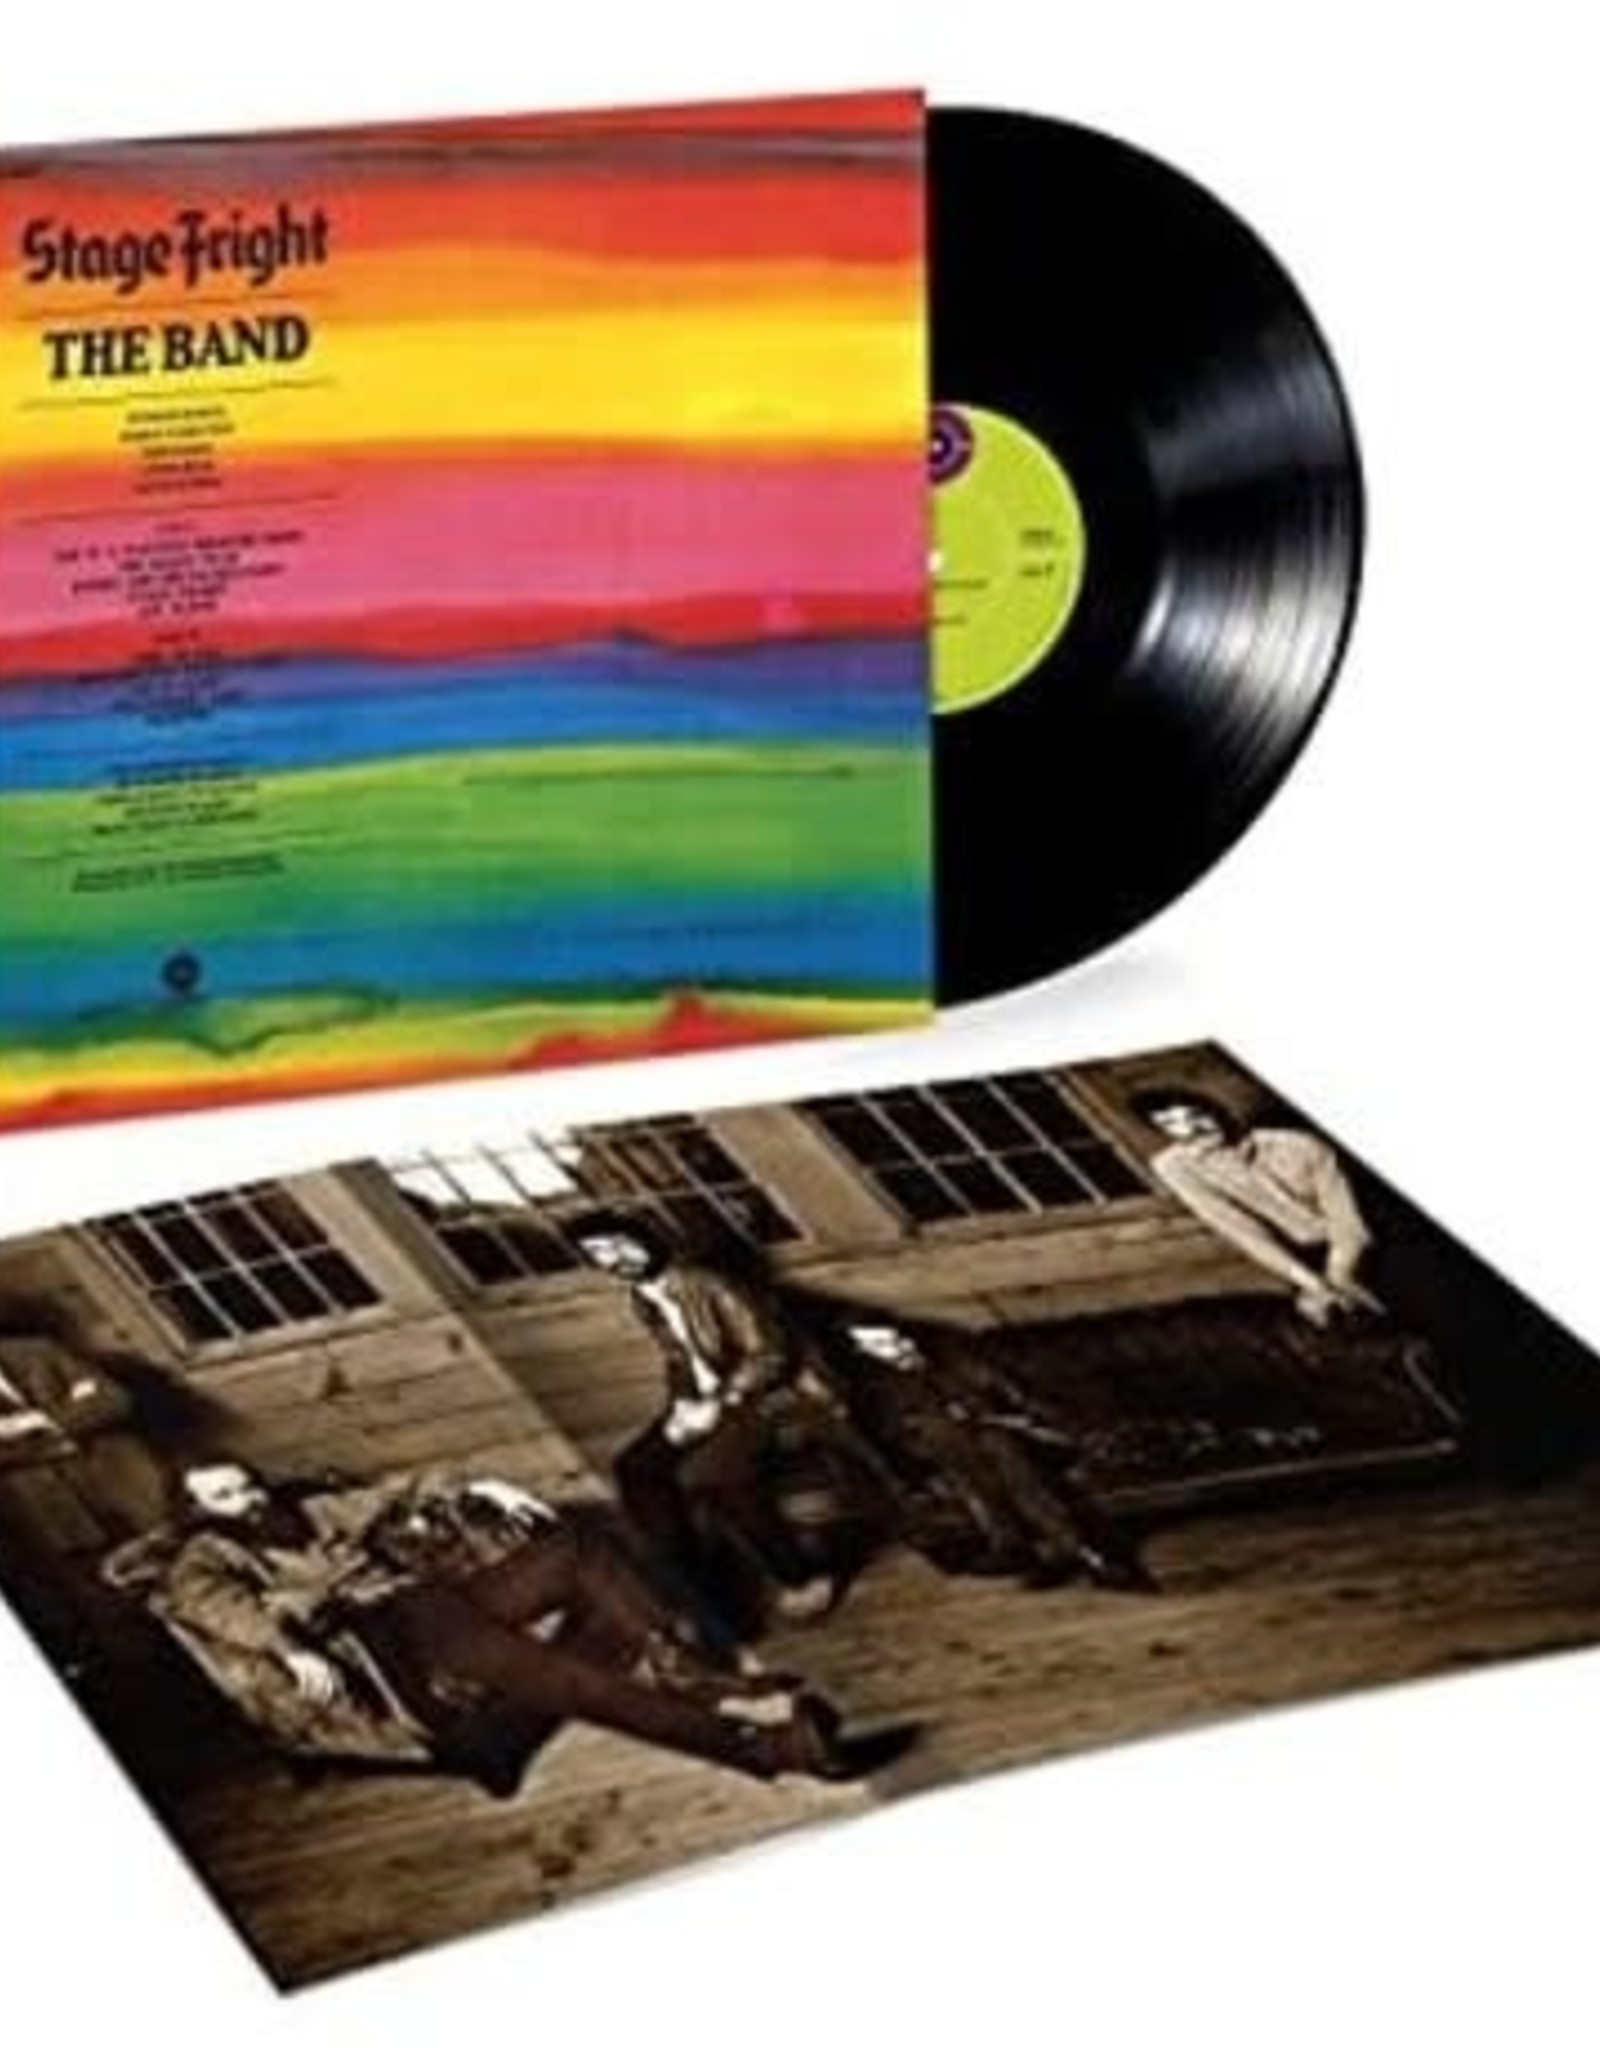 The Band - Stage Fright - 50th Anniversary